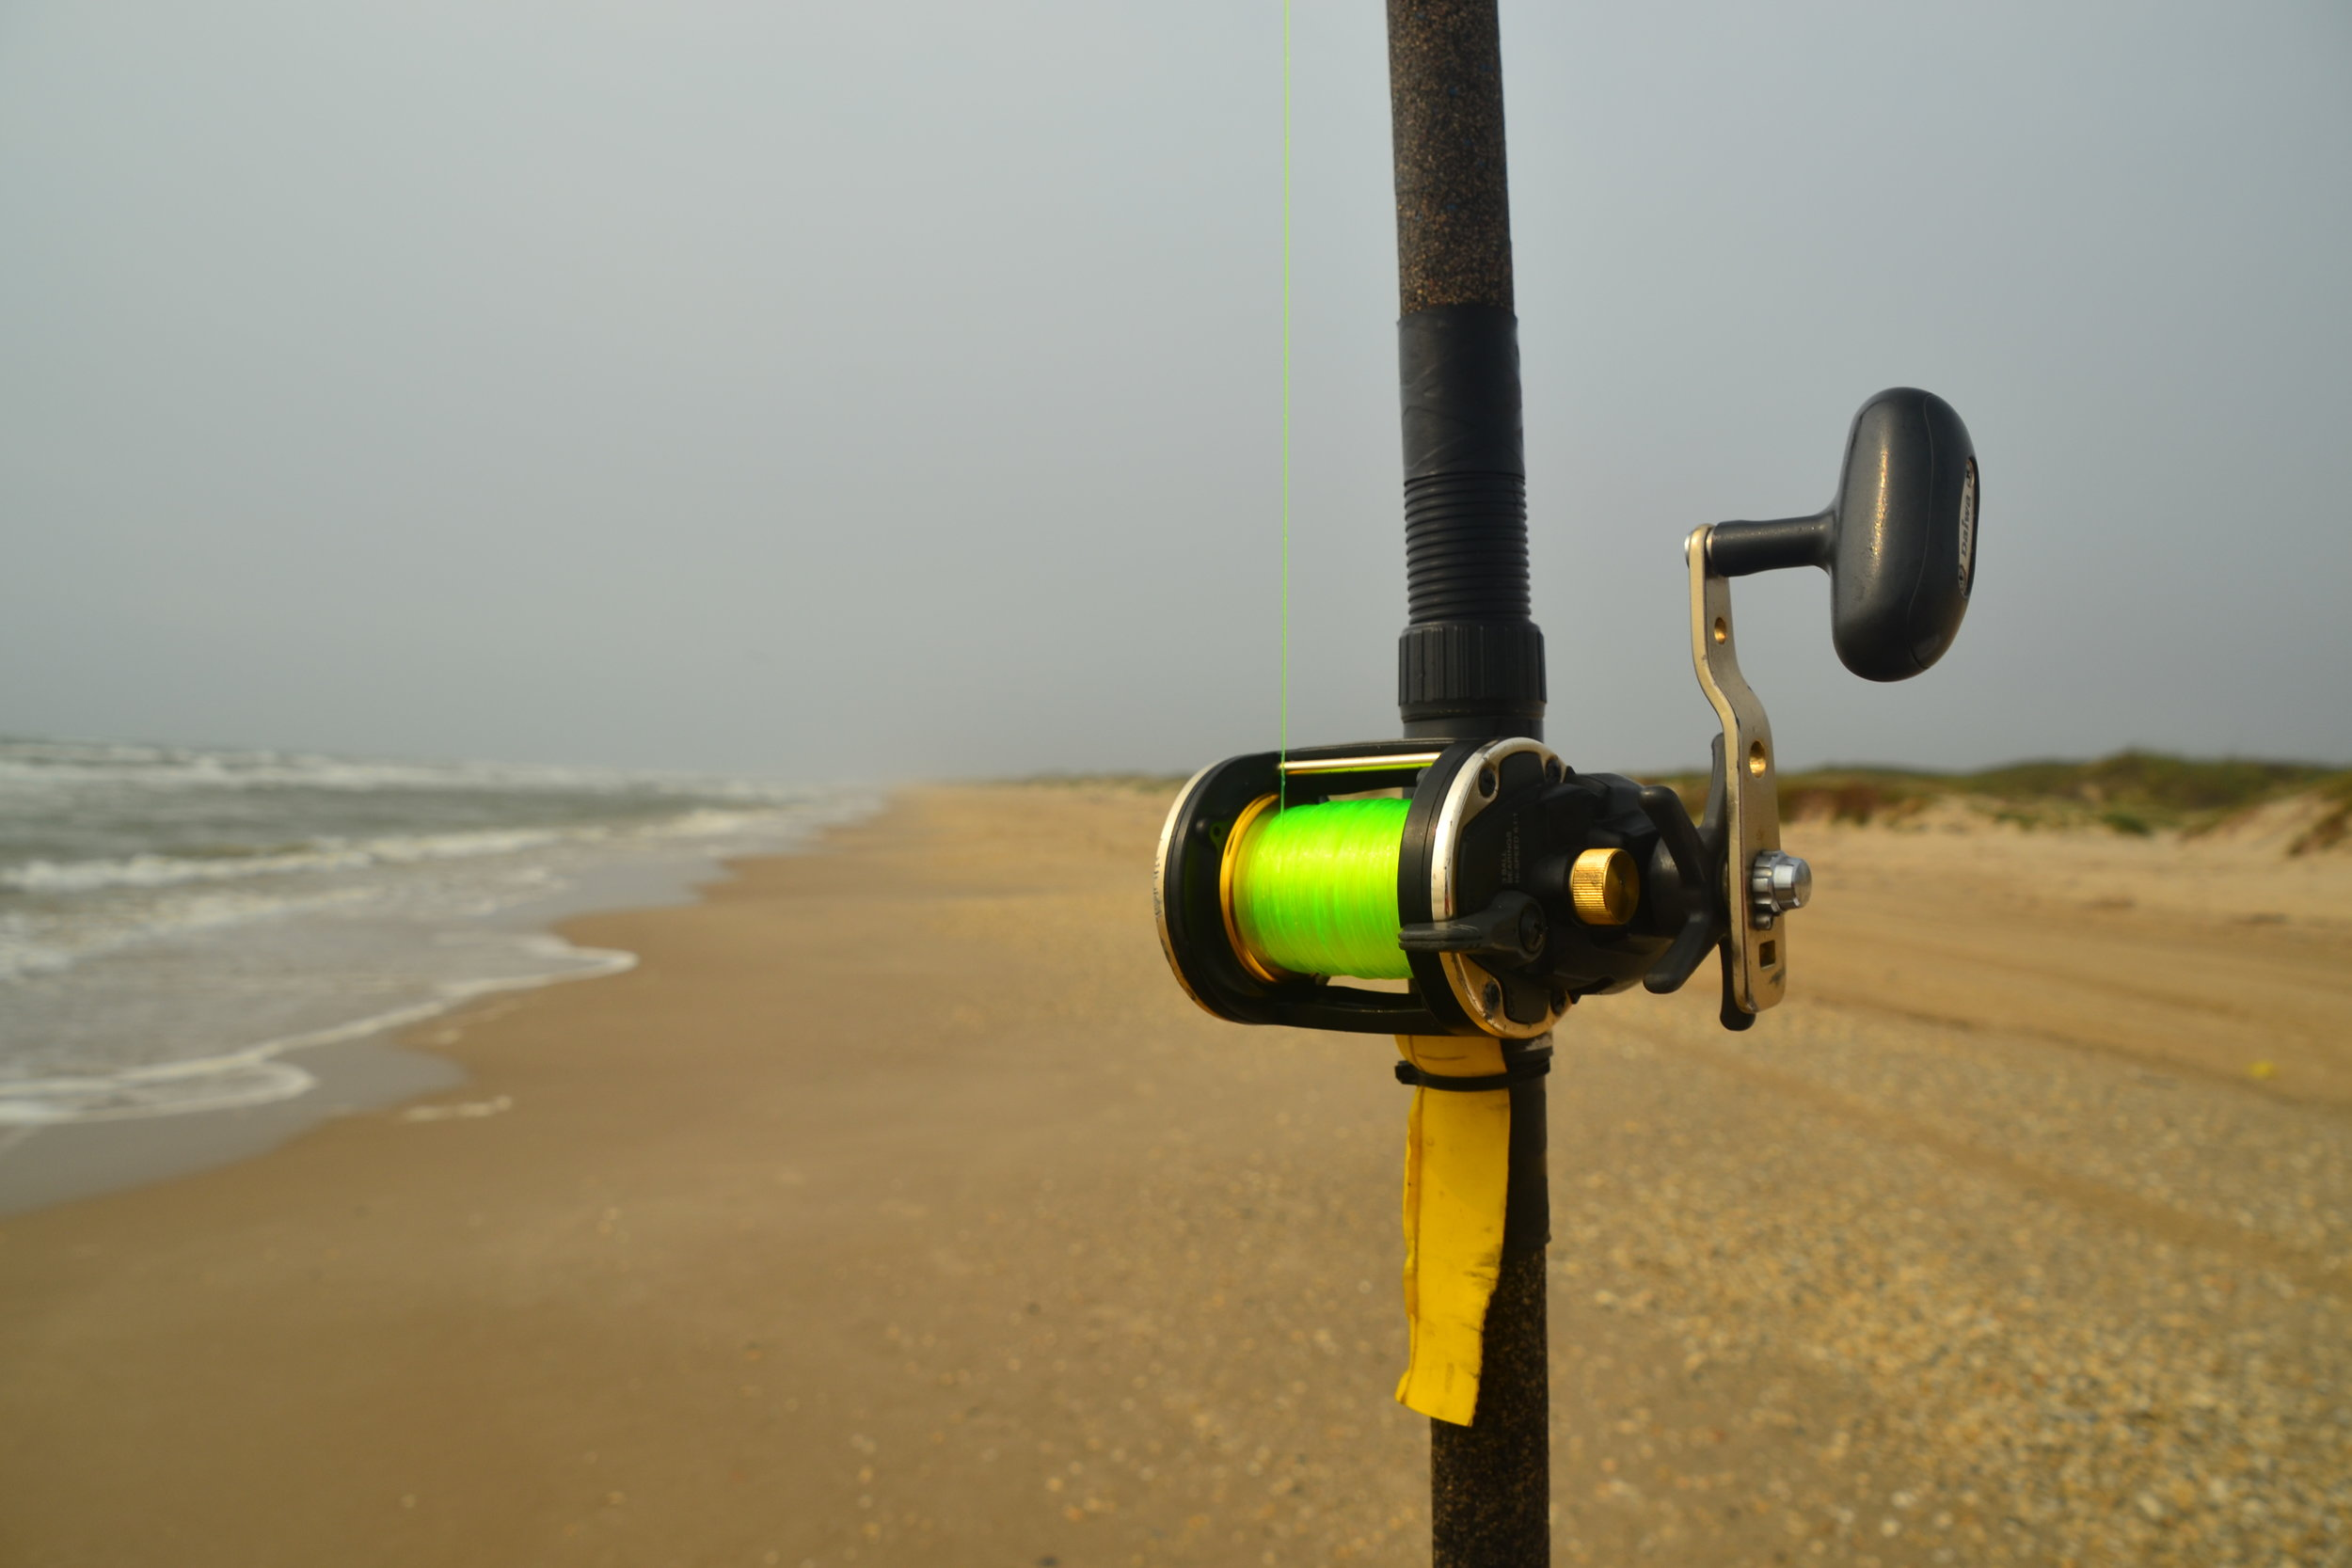 4-6 ft sea makes bait fishing enjoyable, even in high winds.